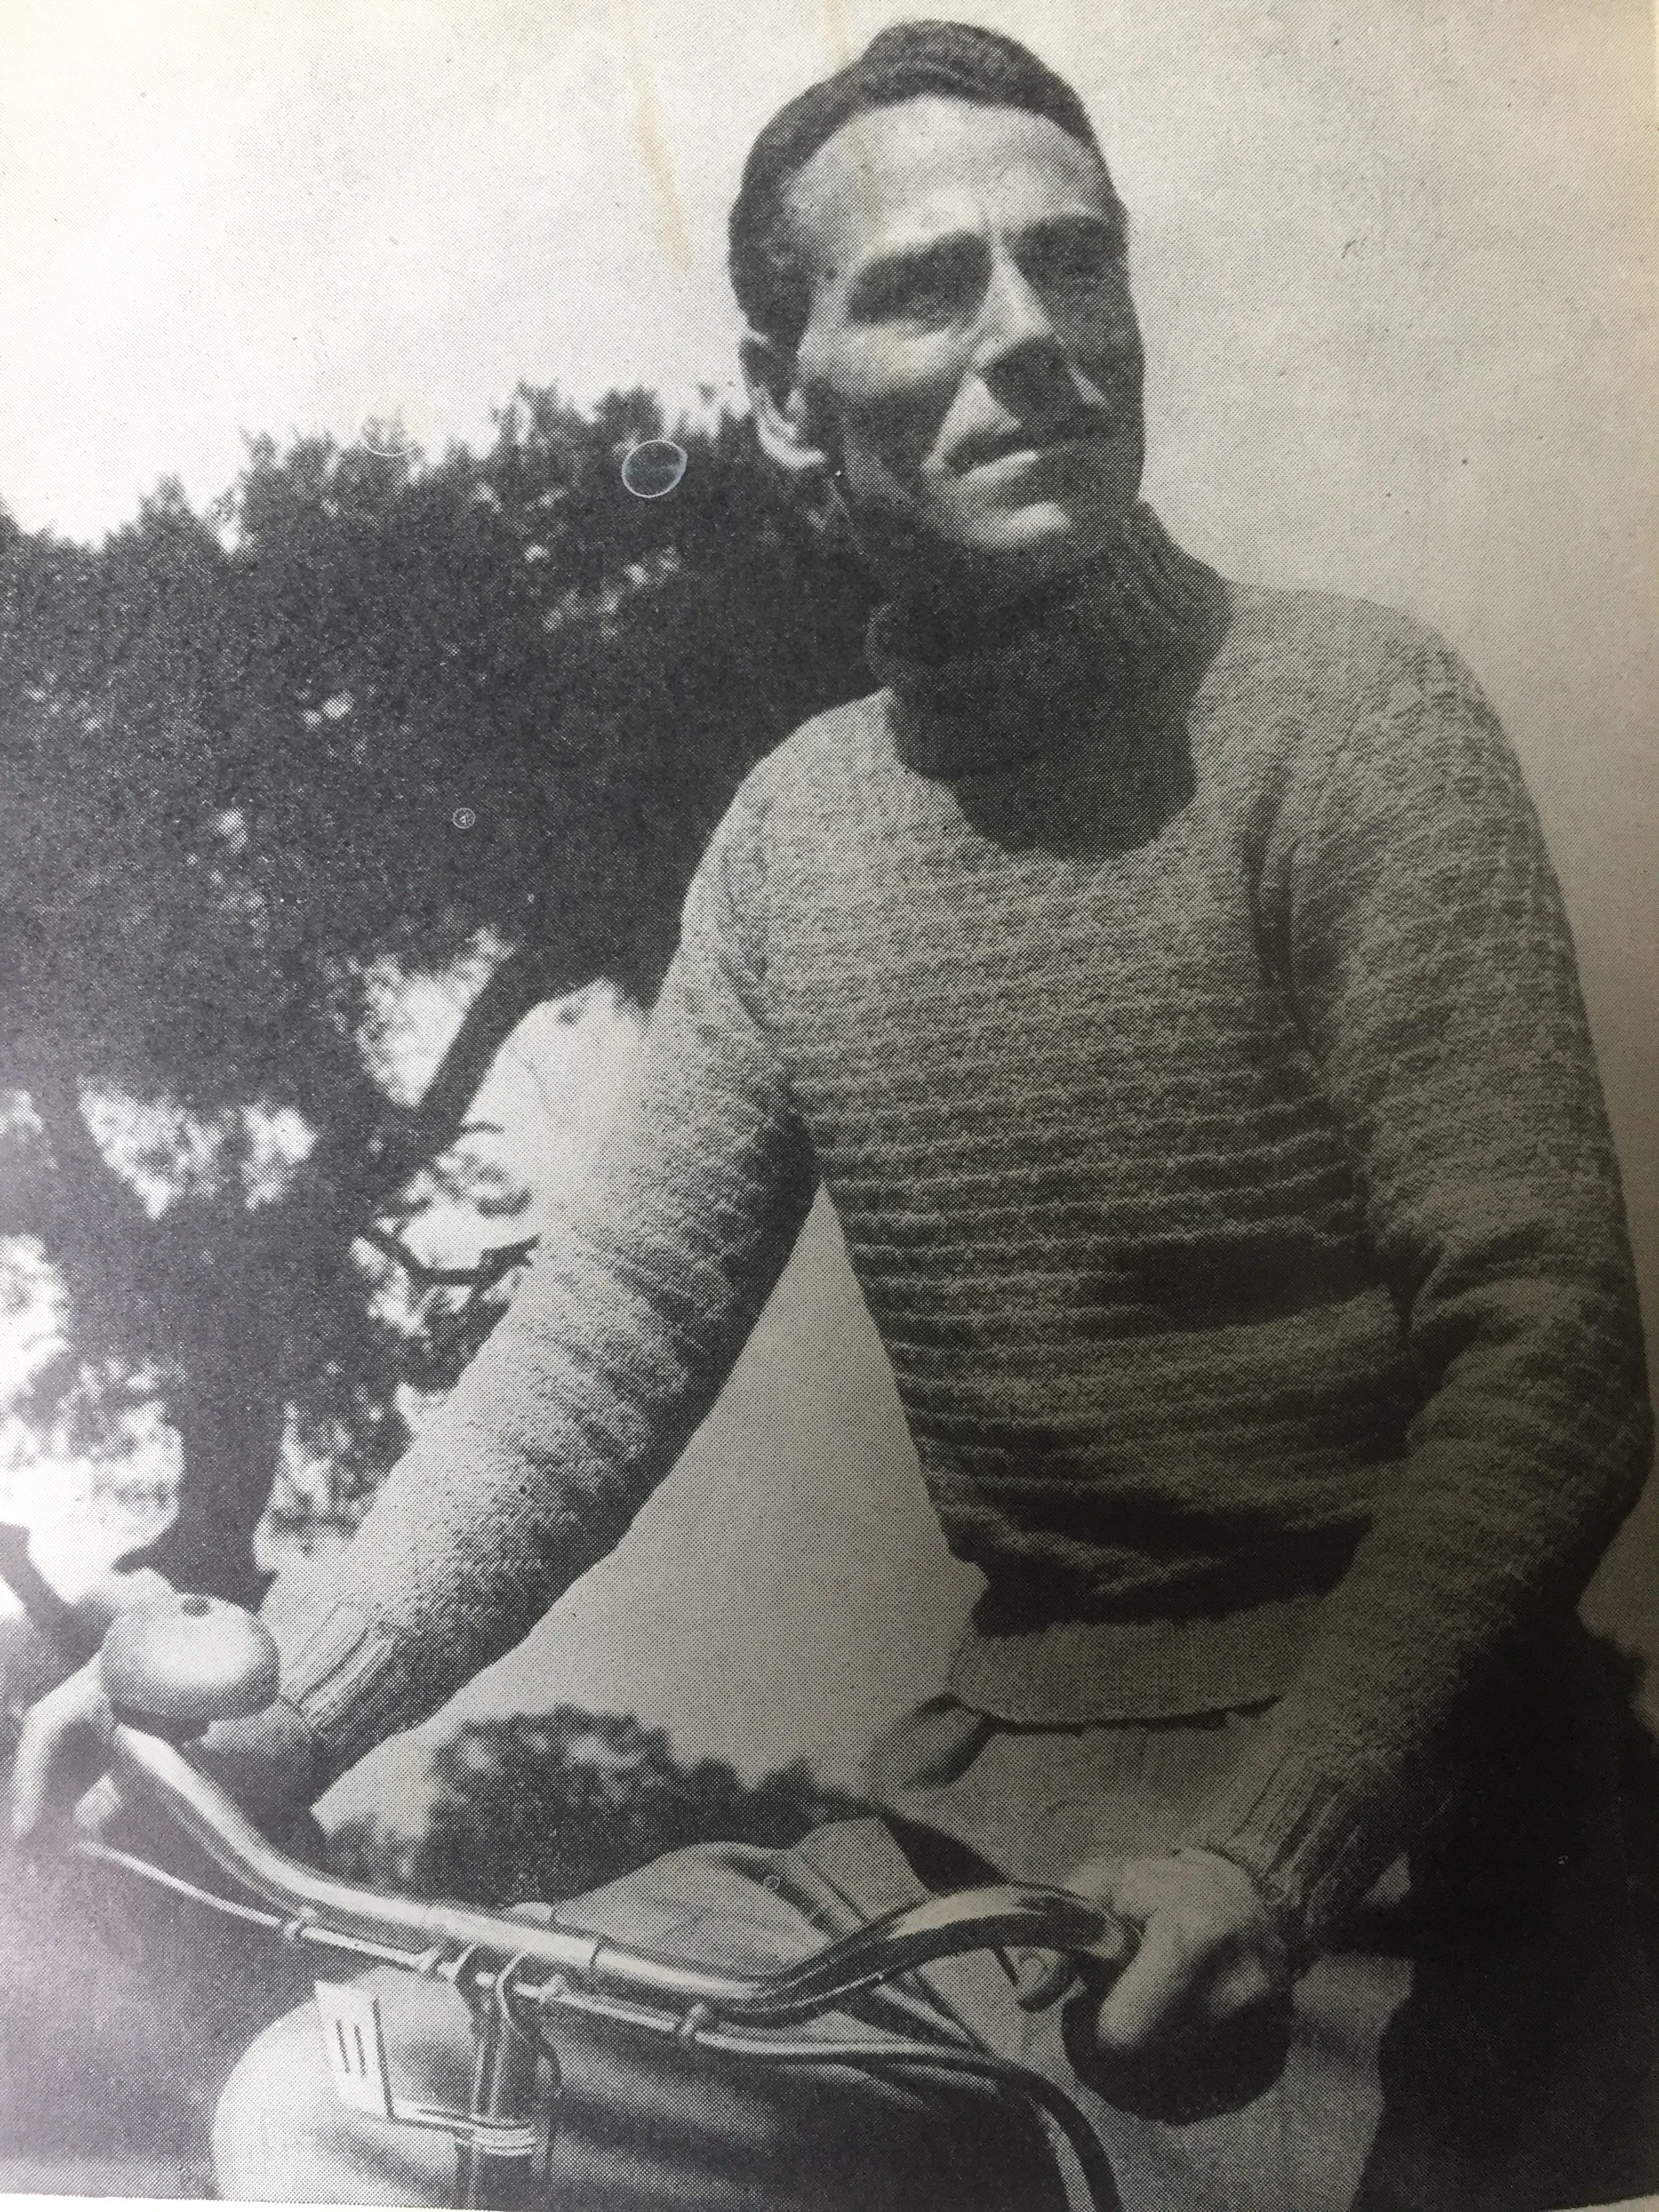 vintage photo of male knitwear model cycling